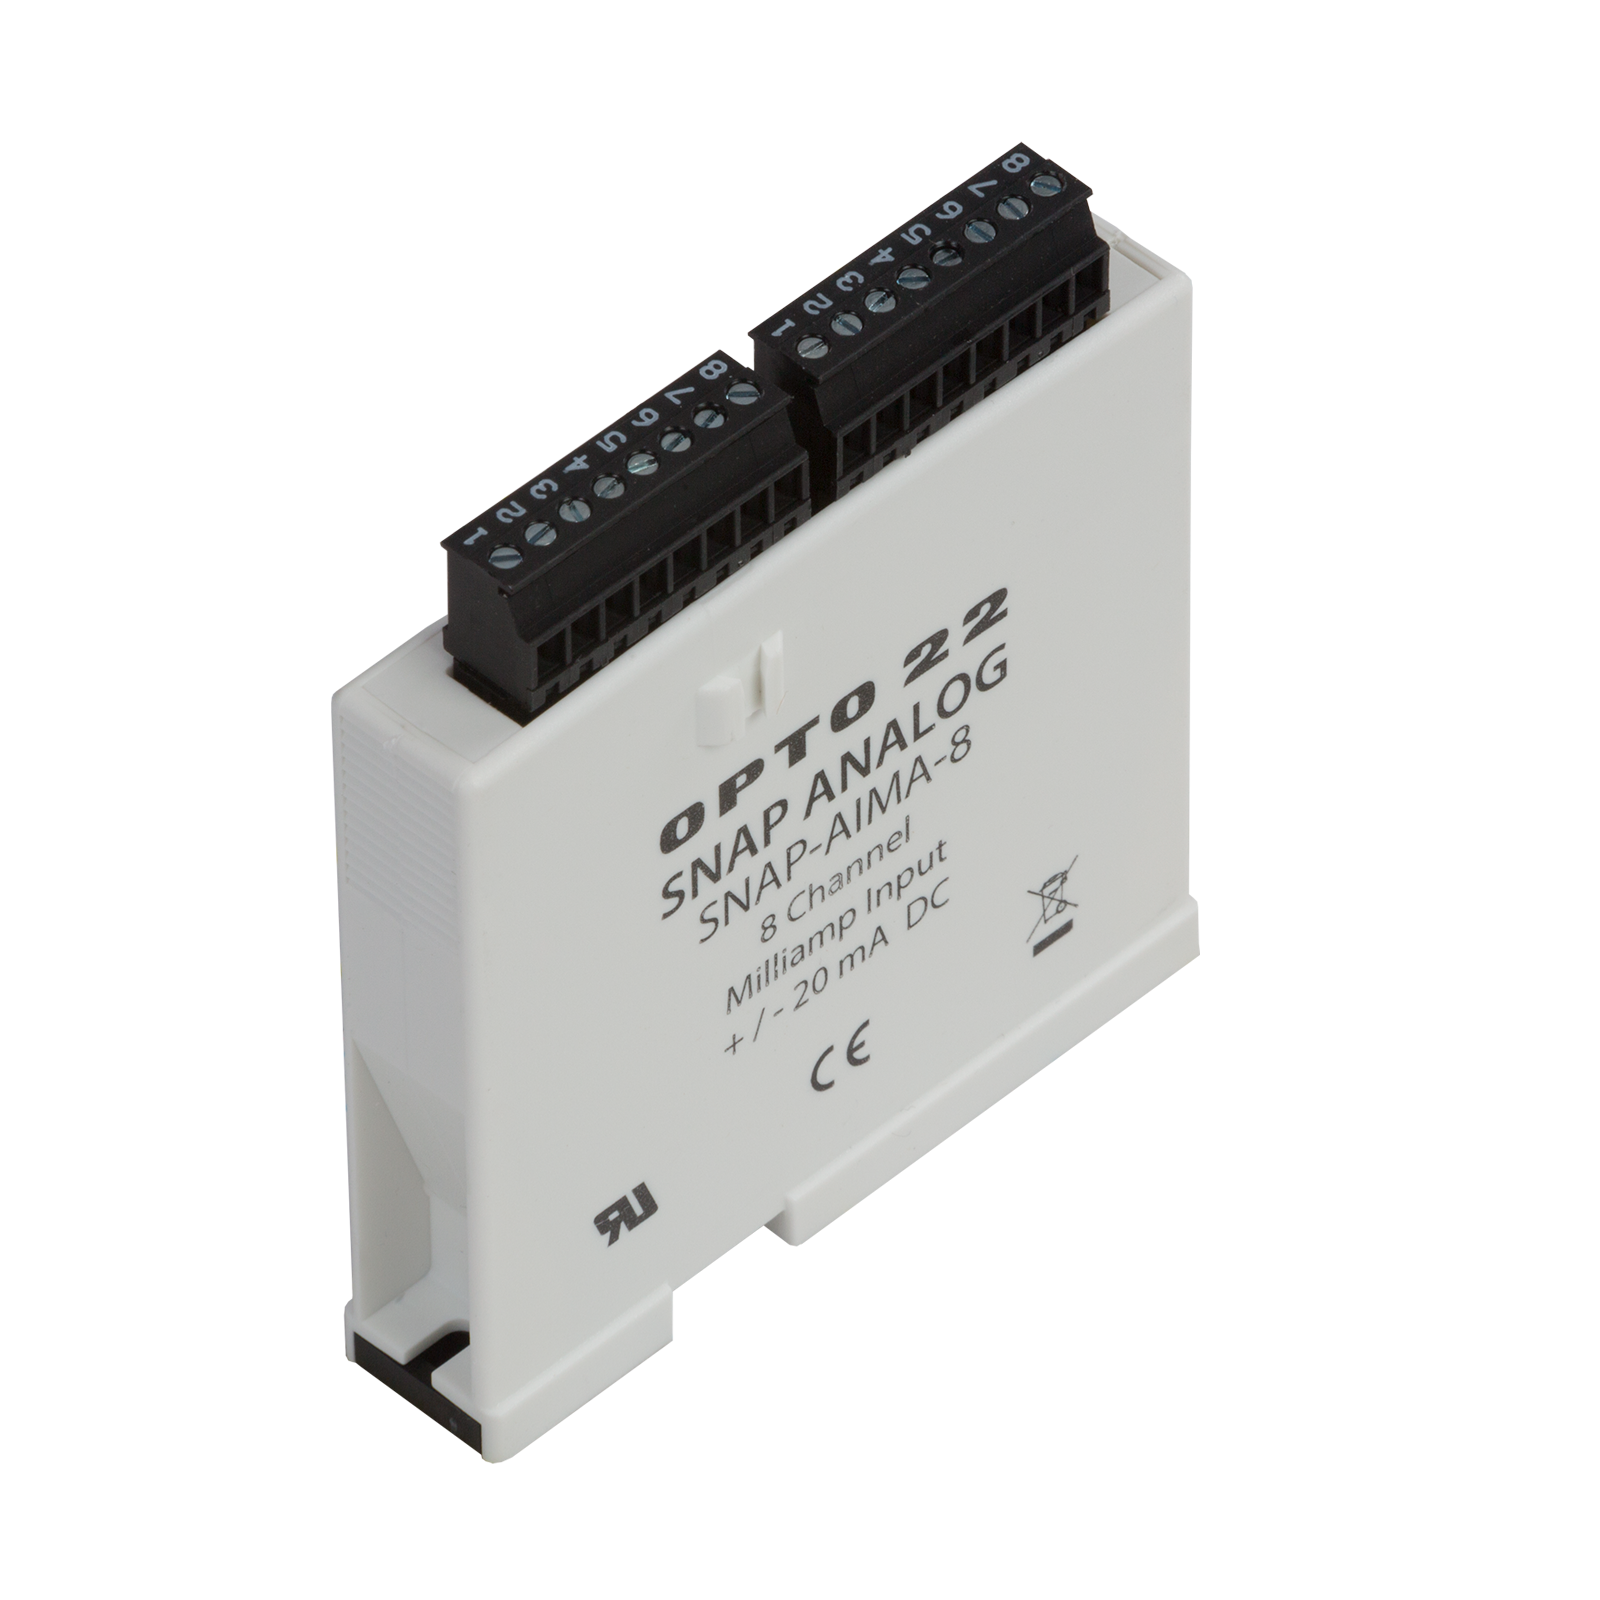 Opto22 Snap Aima 8 Ch 20ma To Analog Current Input Circuit Of Pcbased Data Logger Is Designed Around Digital Previous